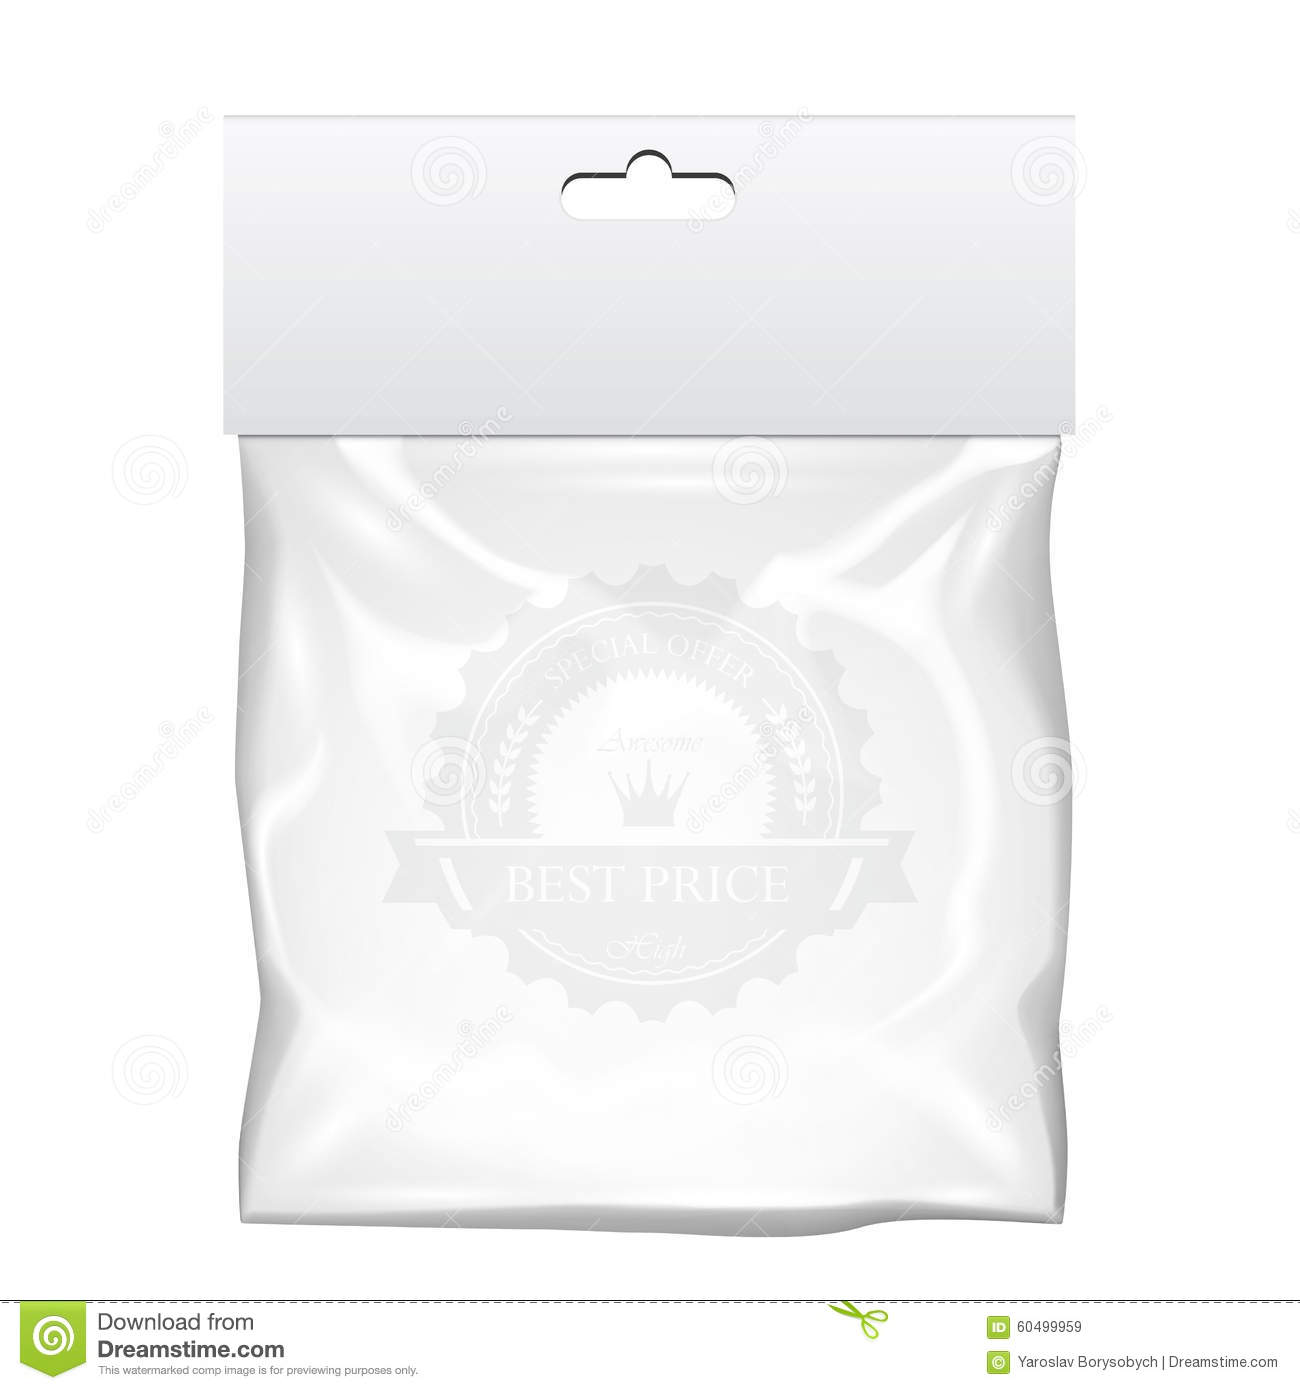 Download vector images of zipper bag mockup on depositphotos ✓ vector stock. Plastic Pocket Bag Mock Up Transparent Template Stock Vector Illustration Of Container Clear 60499959